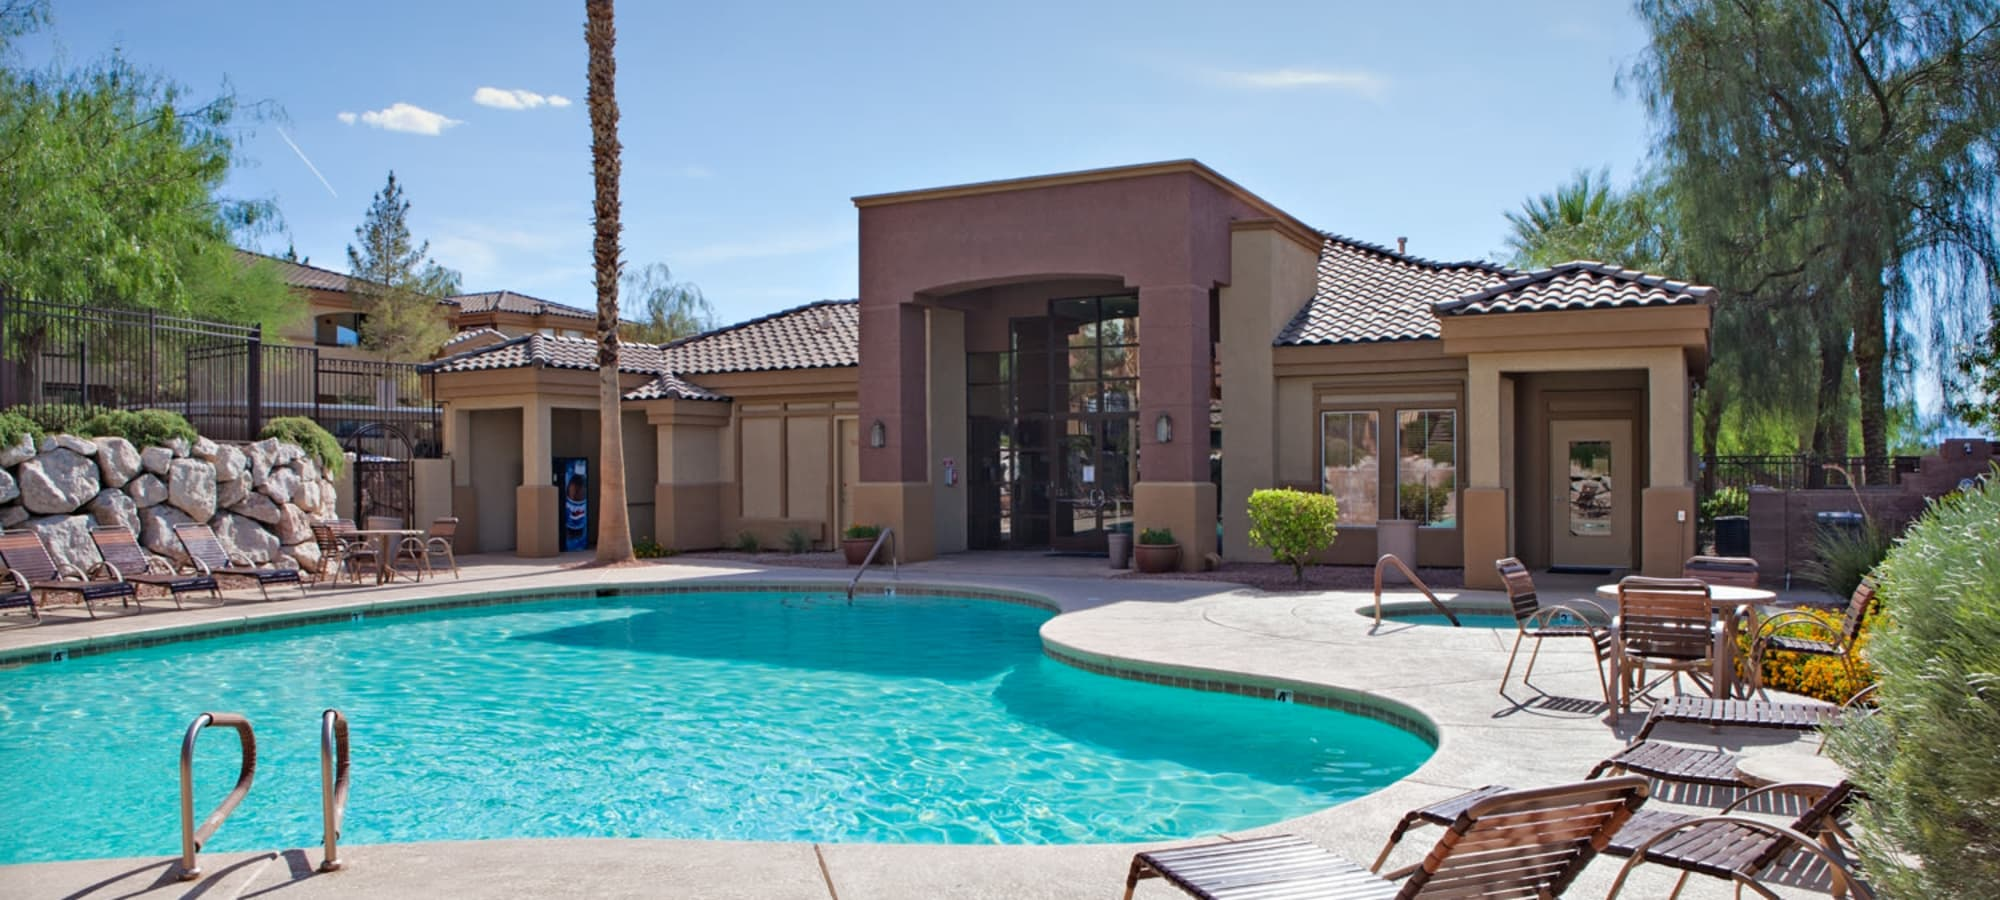 Beautiful swimming pool on a sunny day at Allegro at La Entrada in Henderson, Nevada